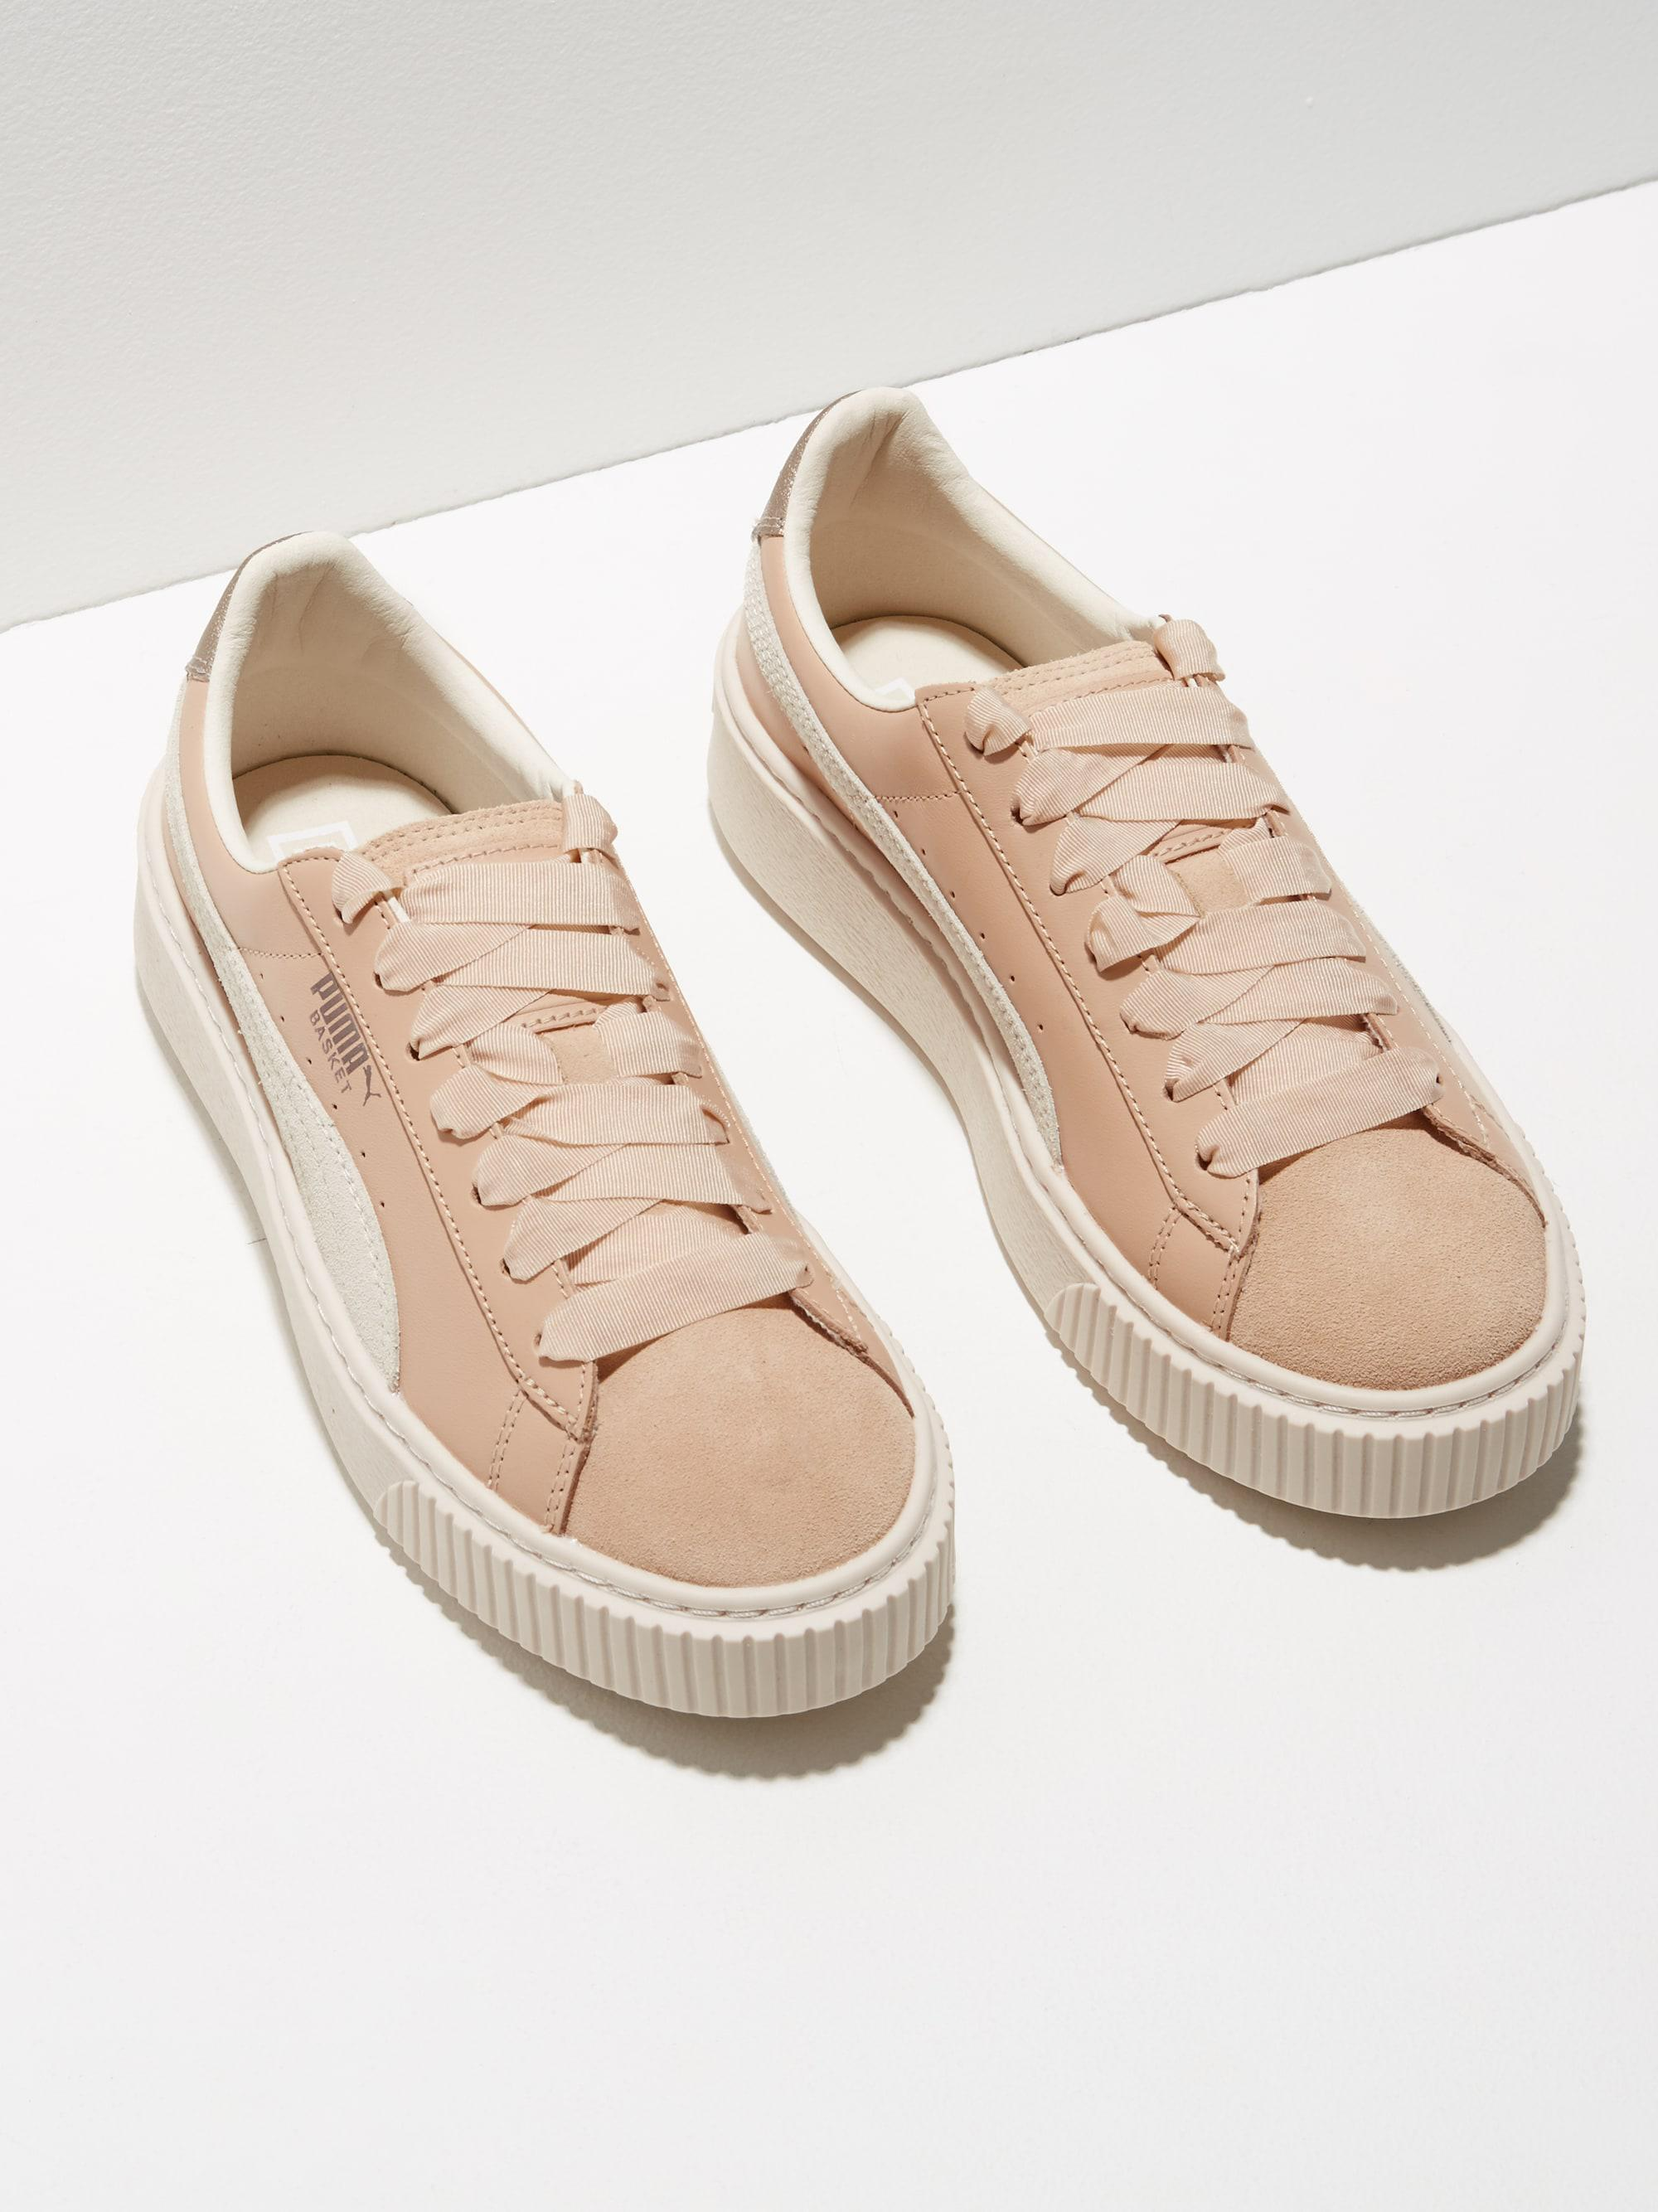 bf72f8068e225c Lyst - Frank And Oak Puma Basket Platform Suede Low Top Sneakers In ...